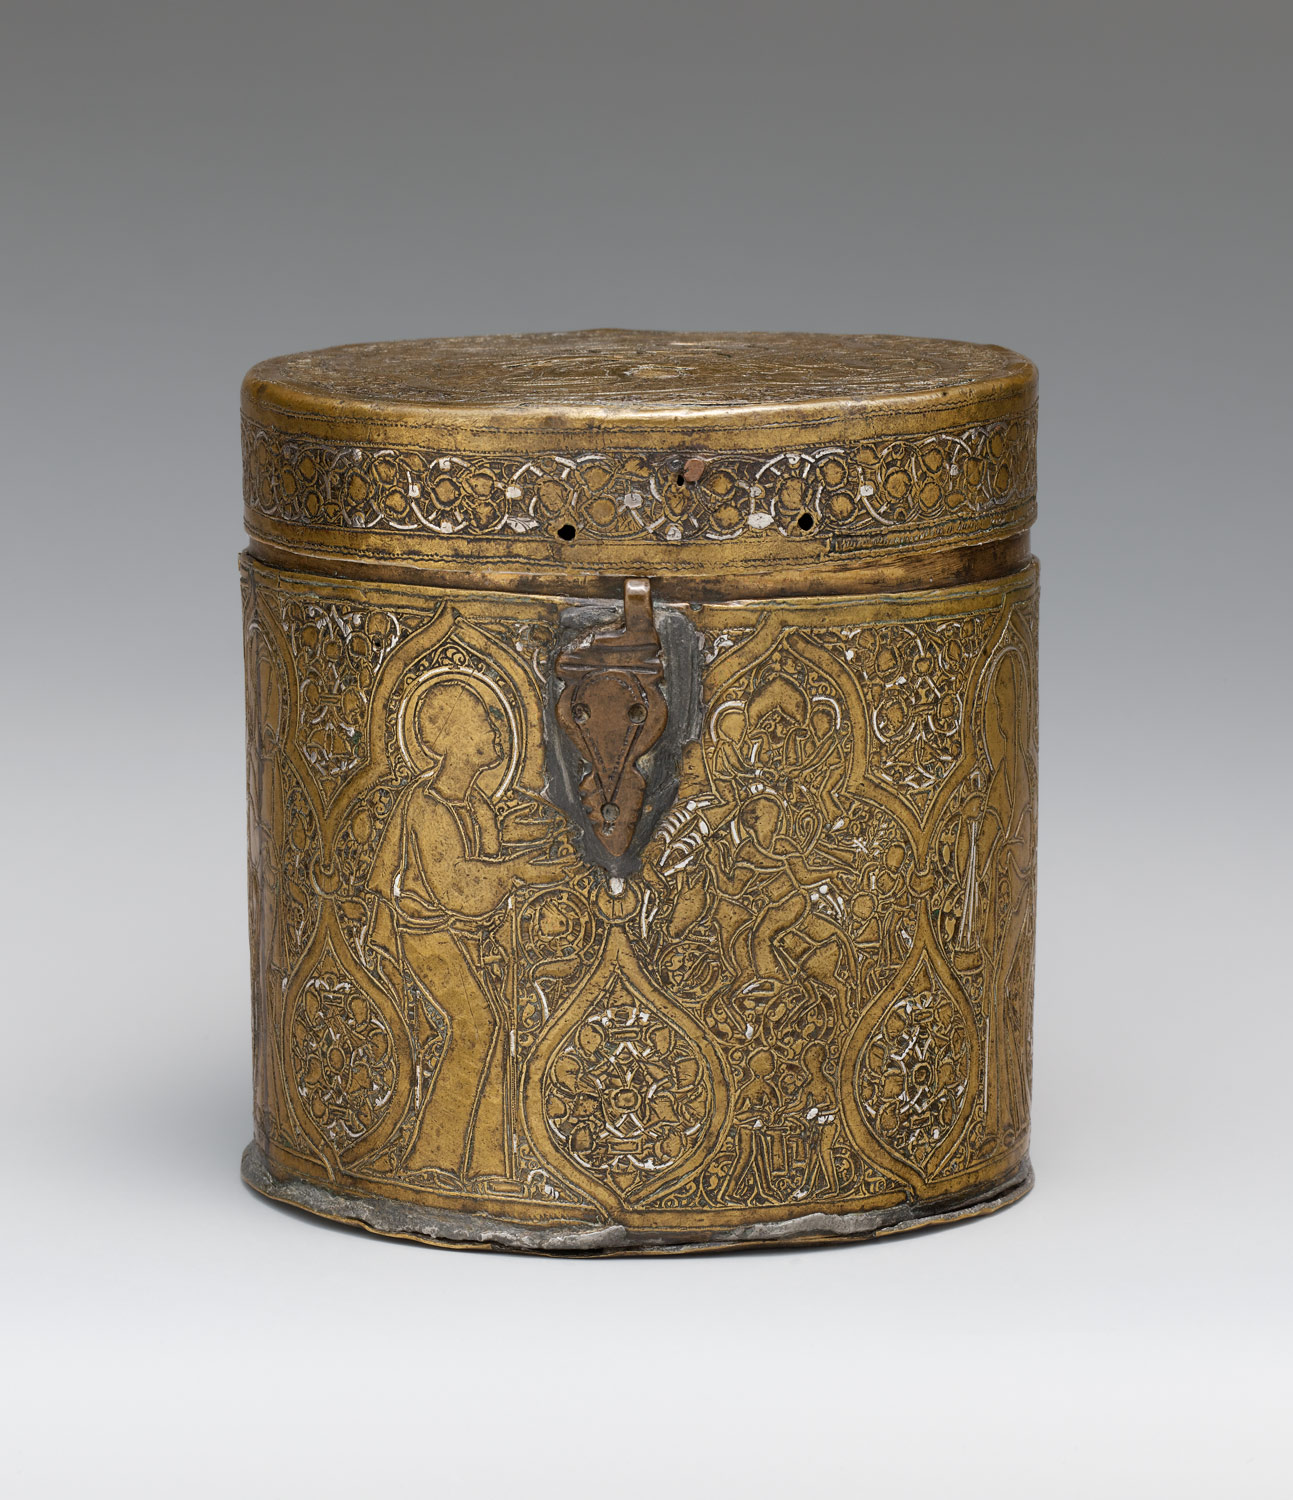 Pyxis depicting Christs Entry into Jerusalem